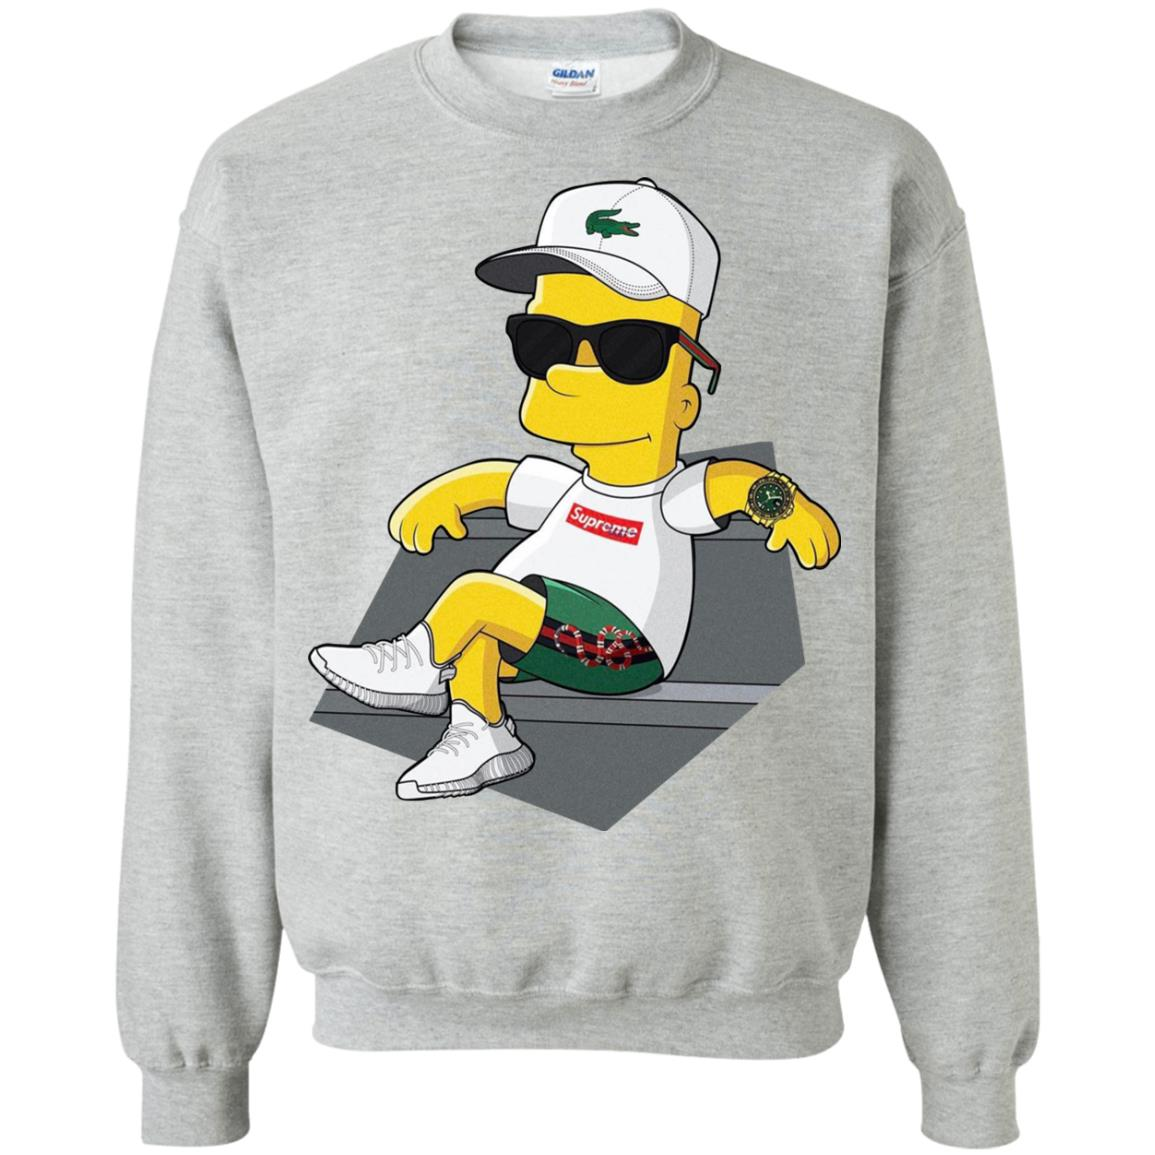 7e571e52 Bart Simpson With Lacoste Hat Yeezy Shoes Gucci Snake Short Sweatshirt